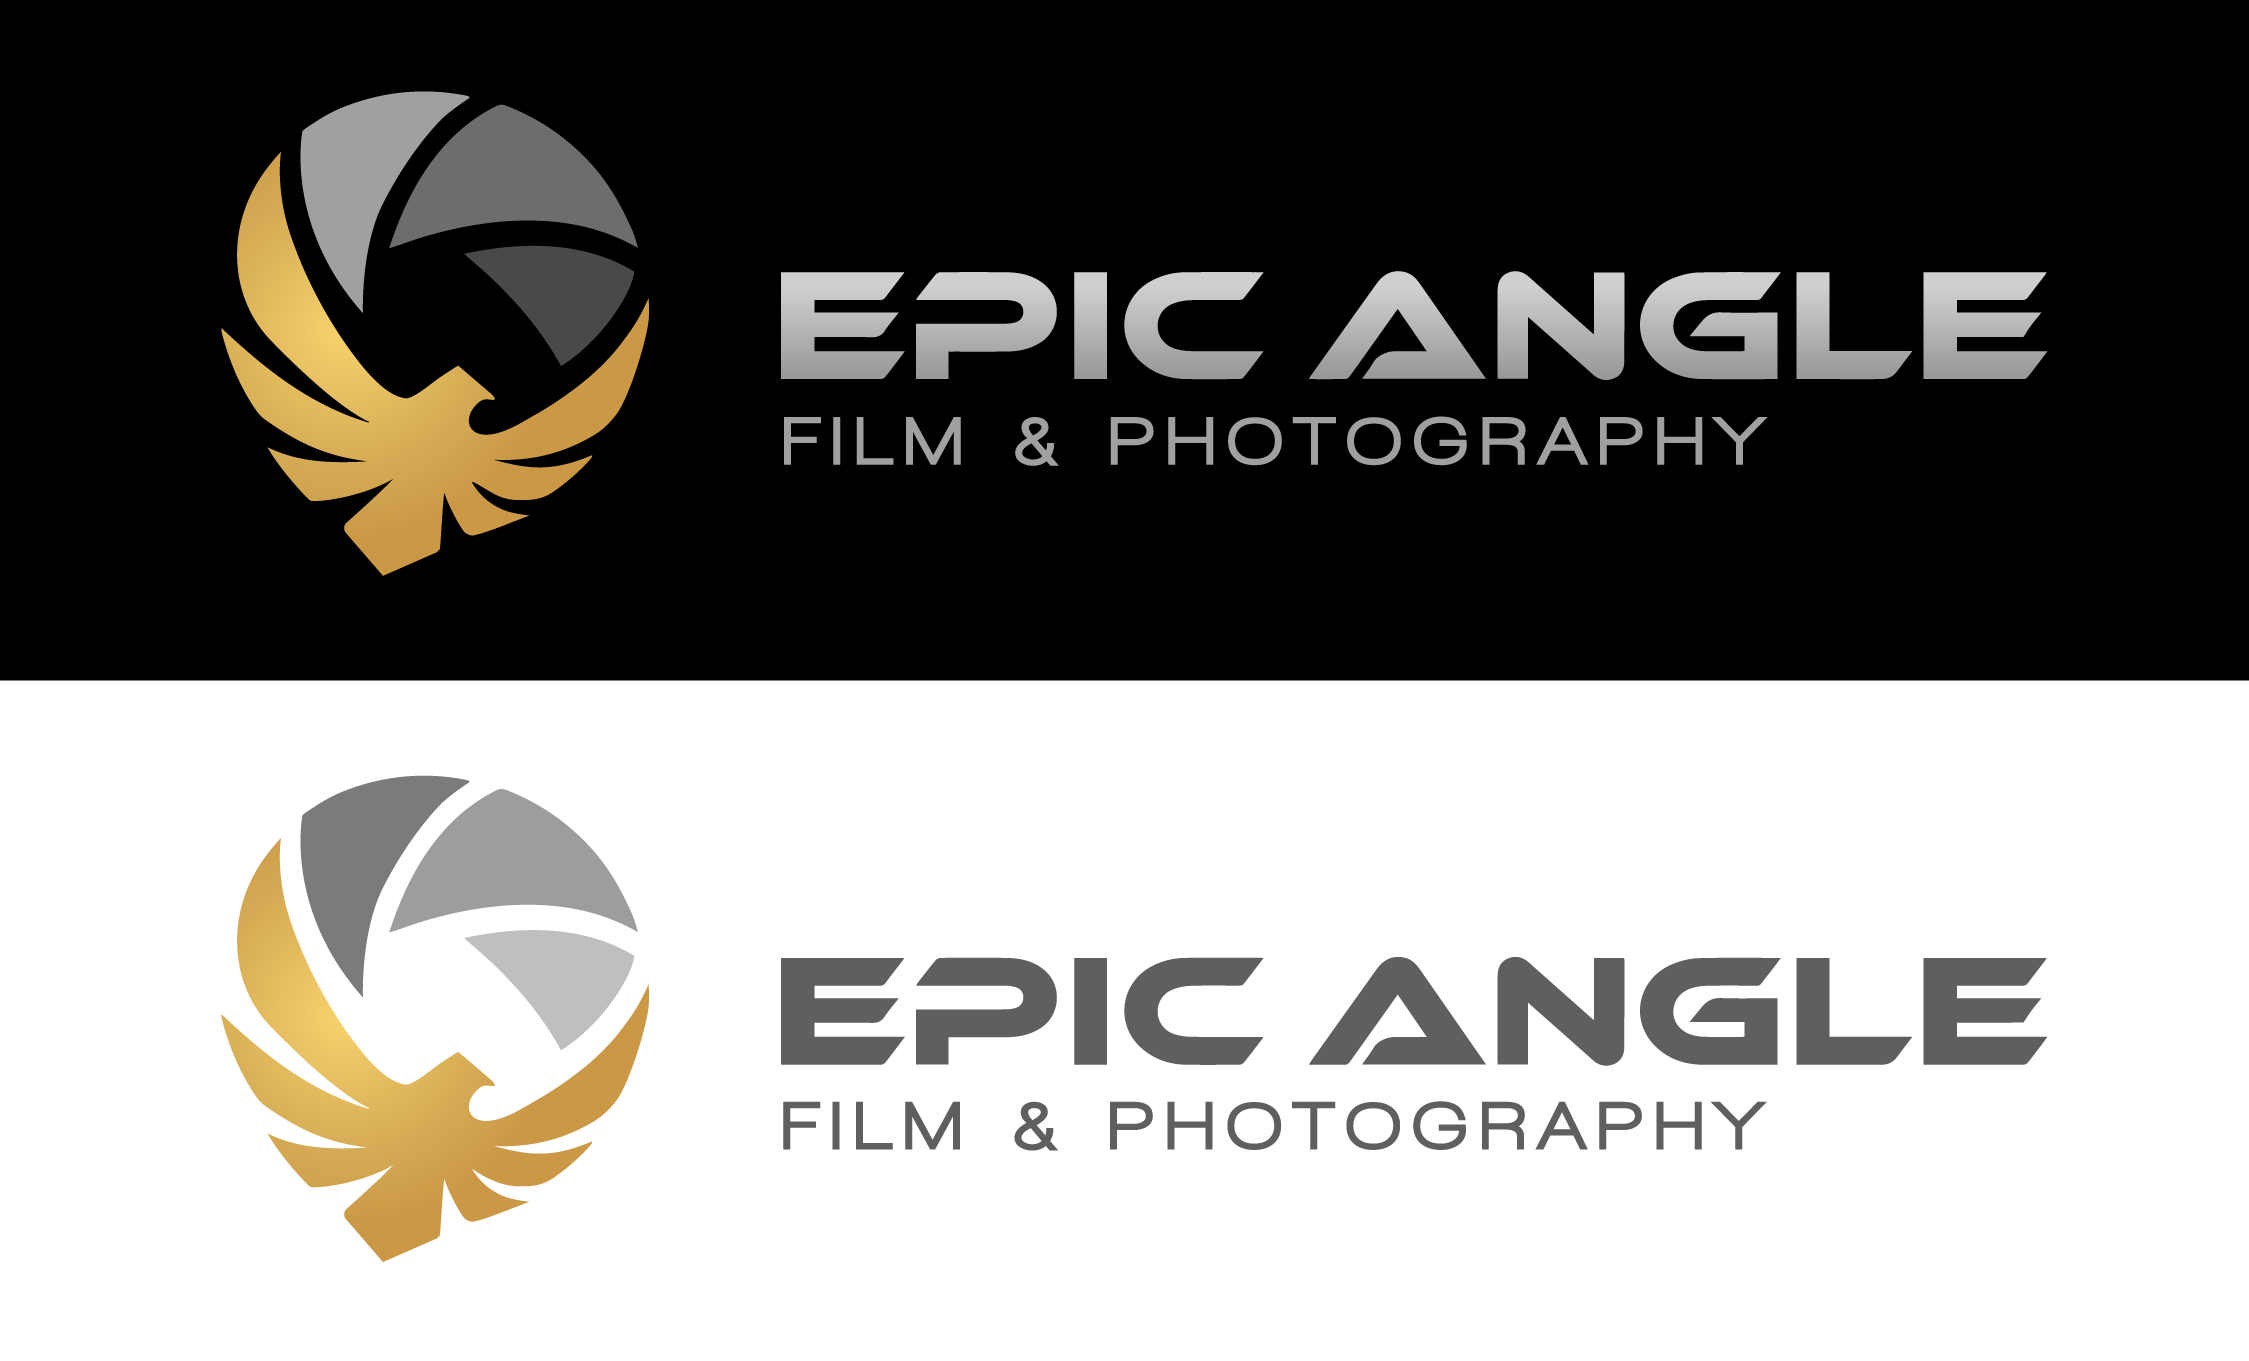 create a an impressing and artistic logo for a new film&photography business